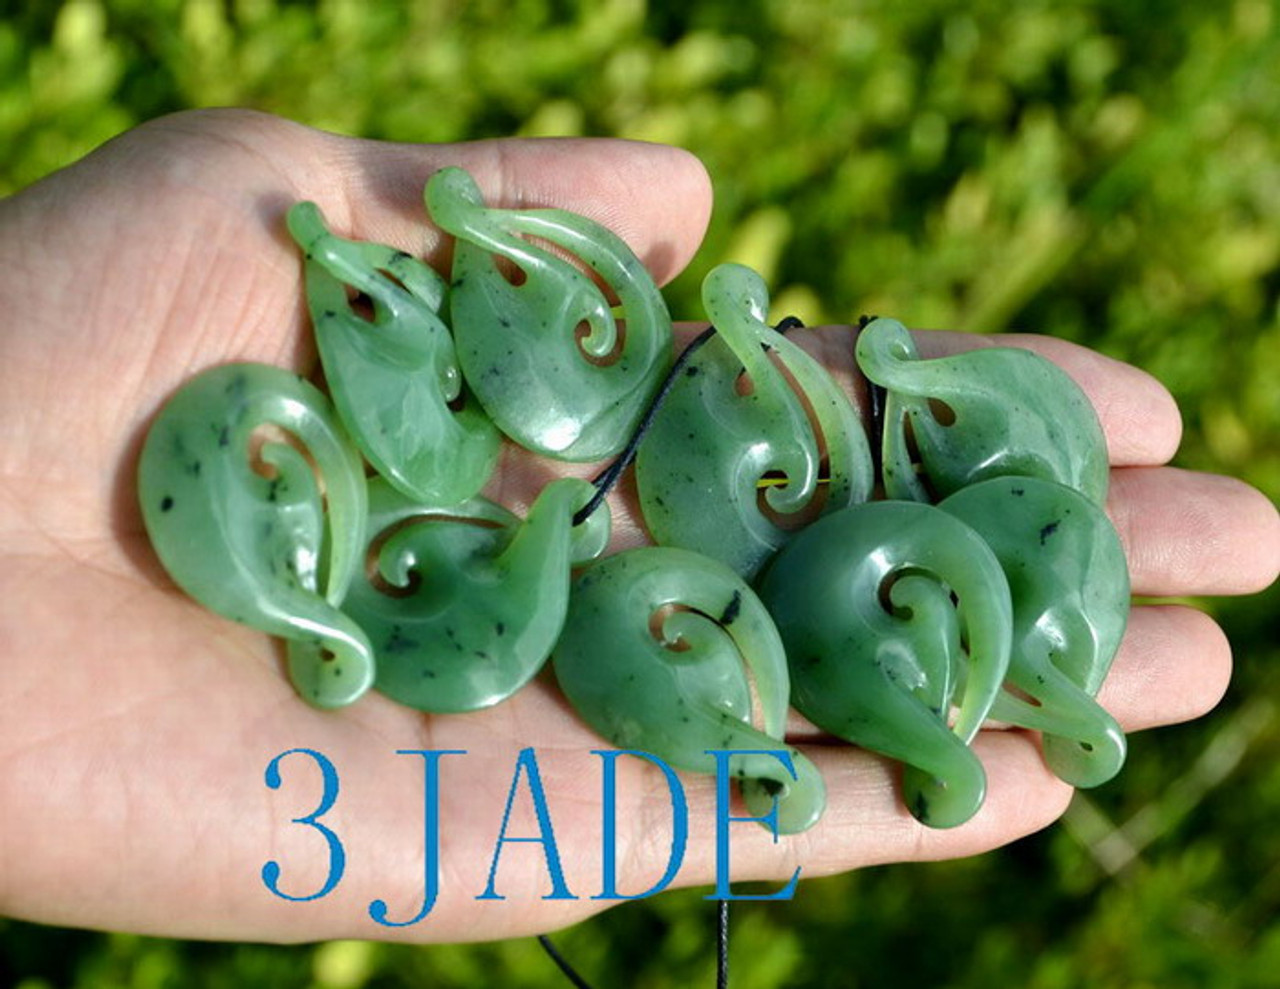 Green Nephrite Jade Twist Pendant Necklace Maori Design Greenstone Jewelry